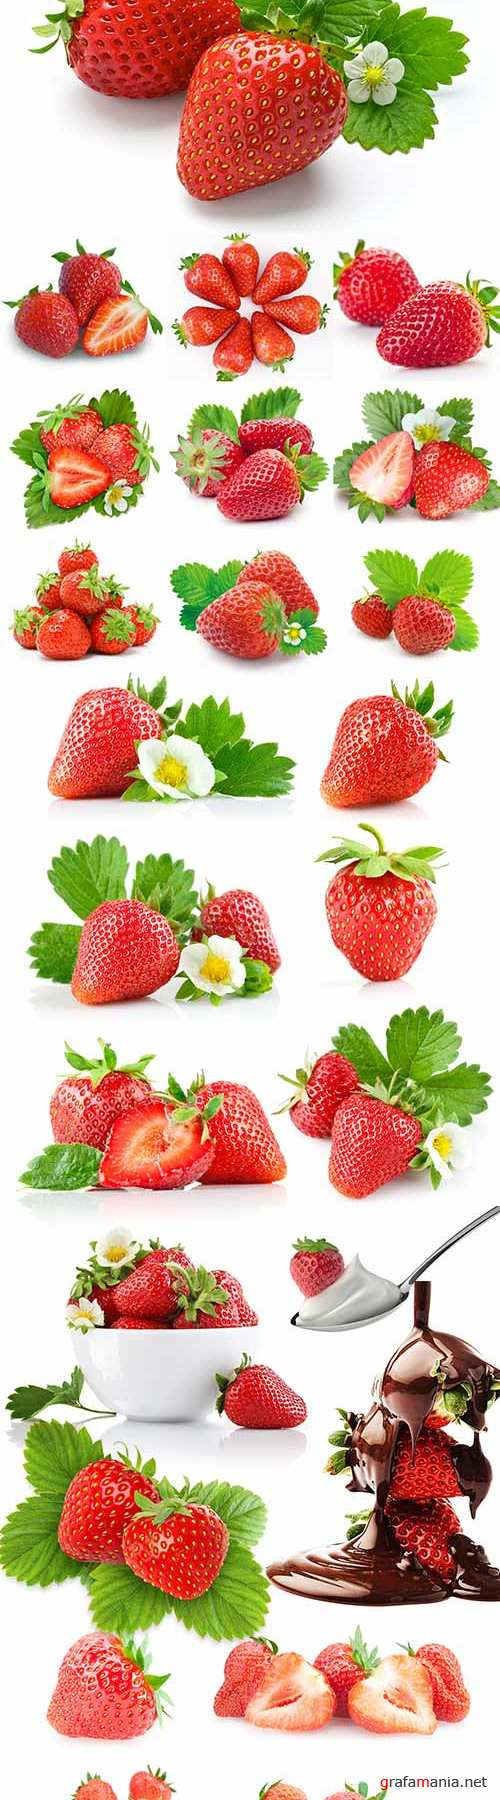 Juicy strawberries on a white background